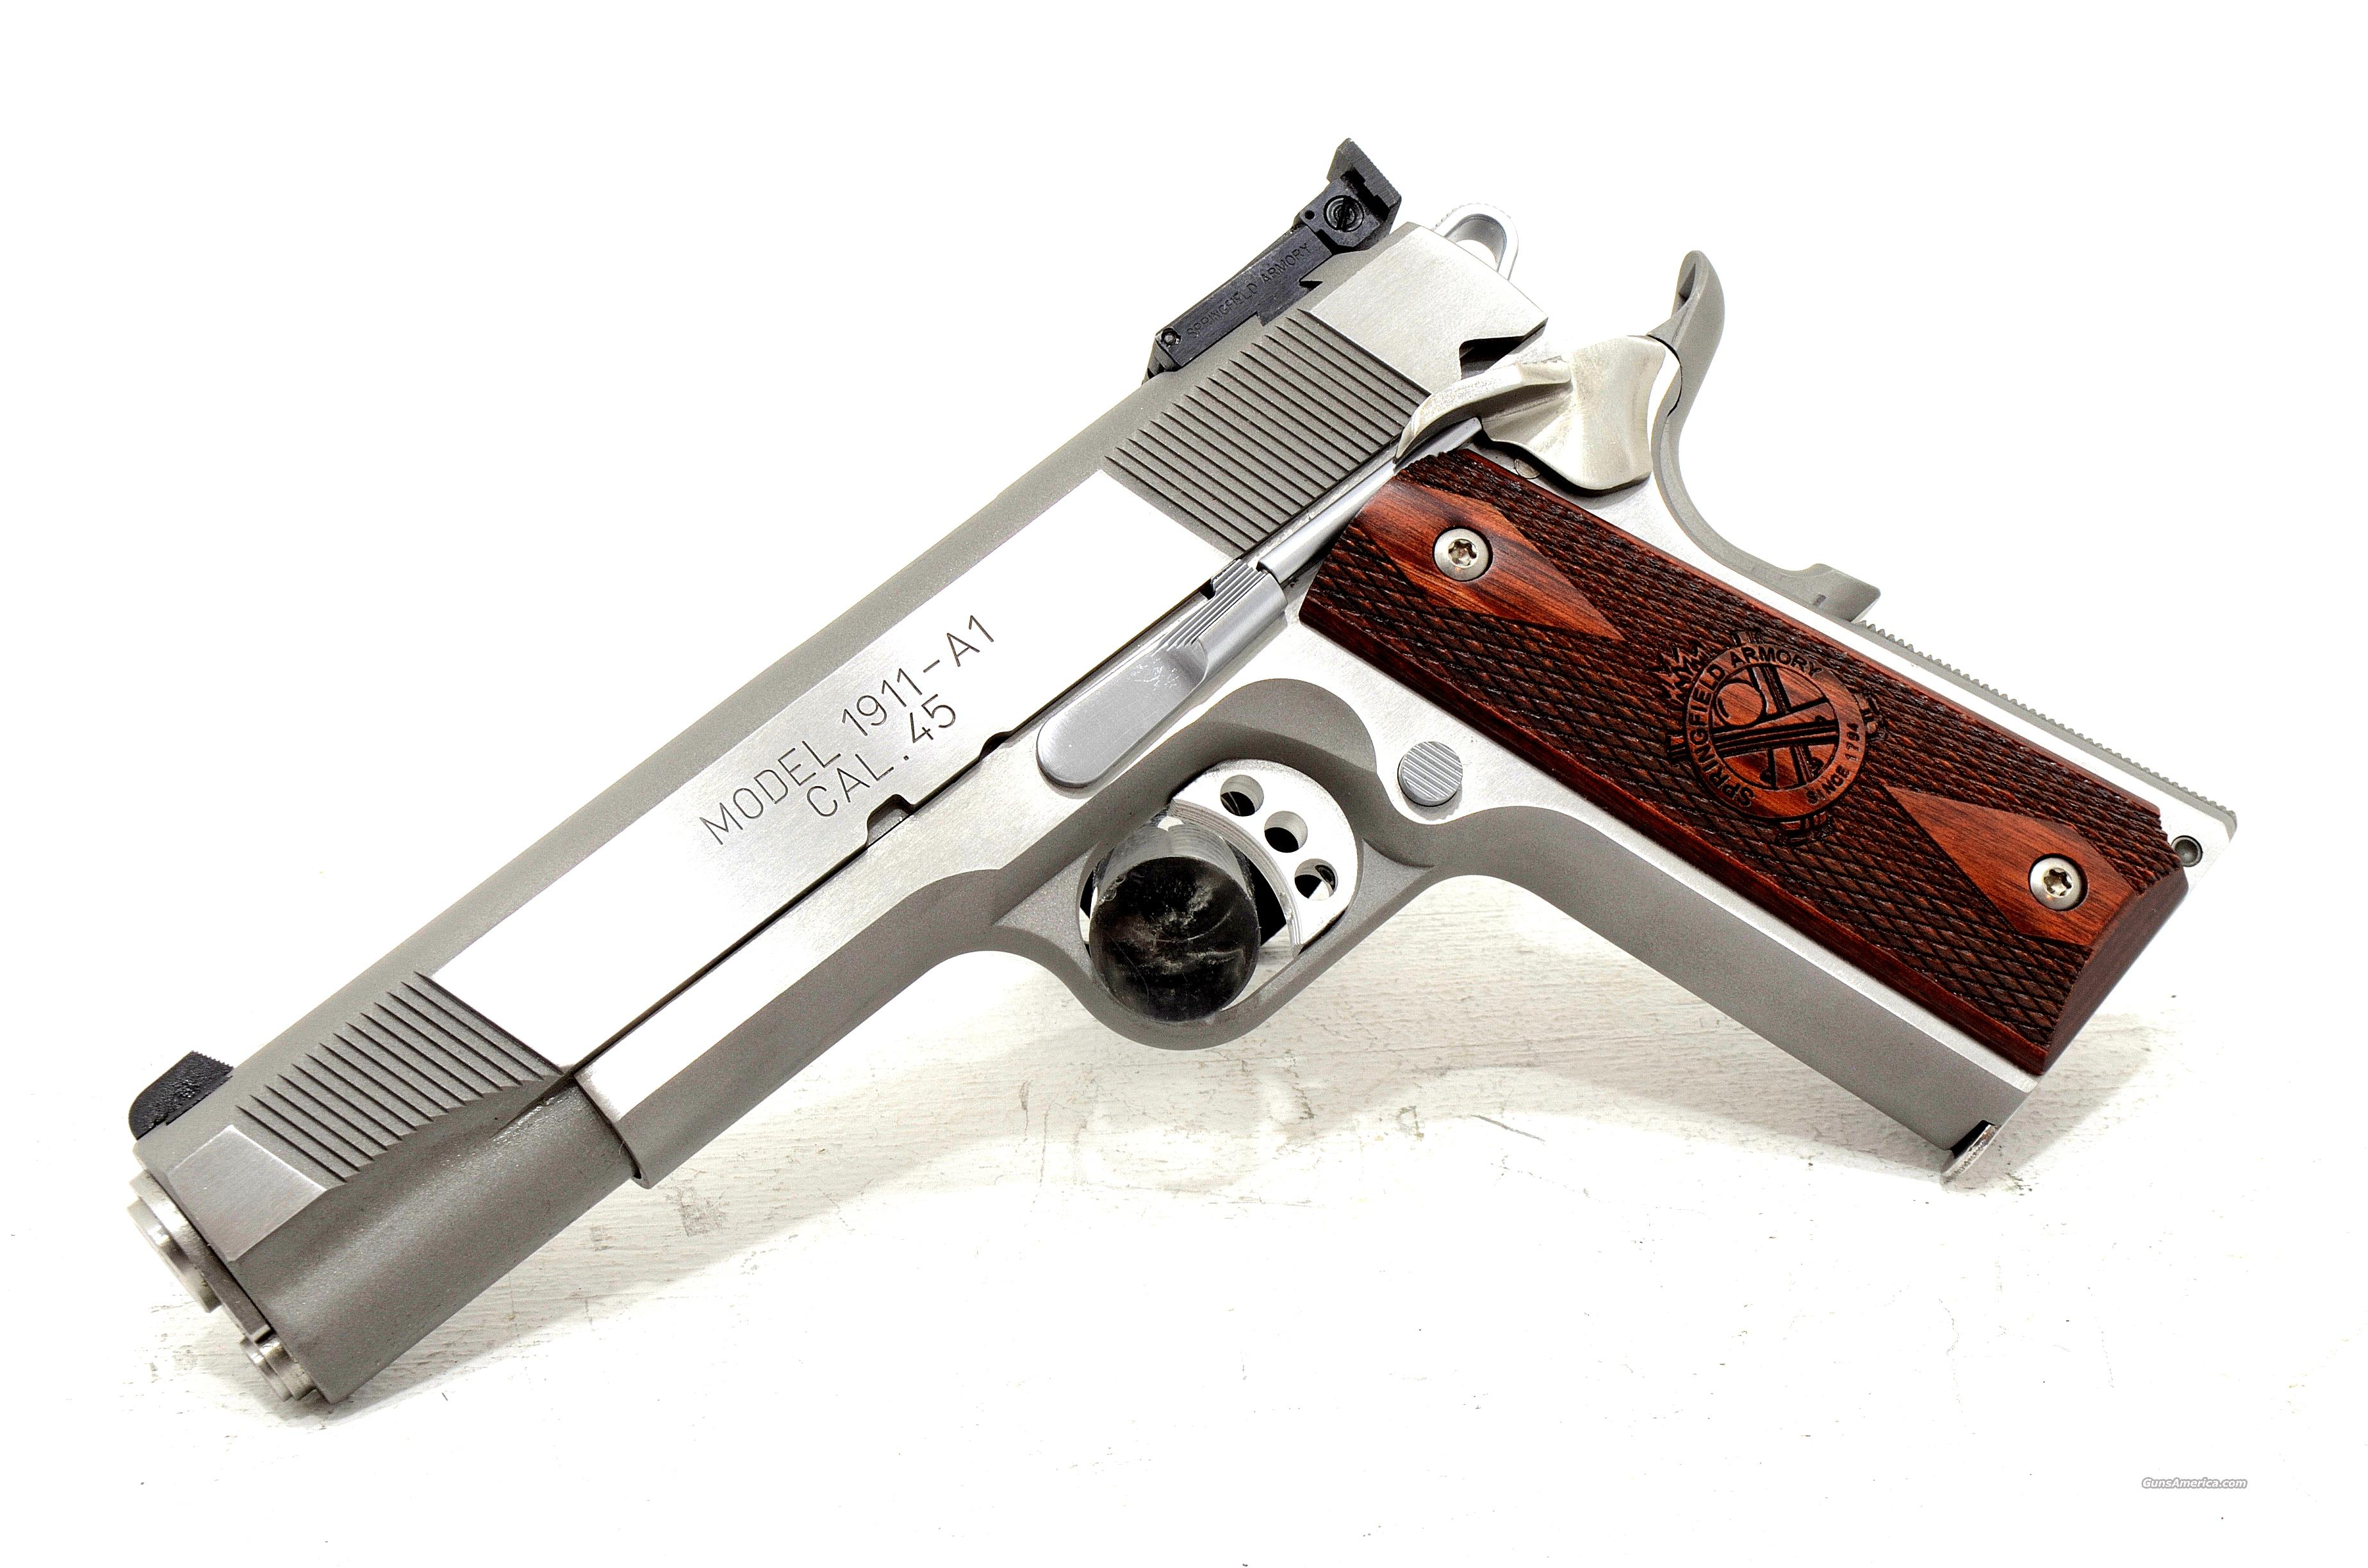 NEW! SPRINGFIELD 1911A1 TARGET MODEL .45ACP  Guns > Pistols > Springfield Armory Pistols > 1911 Type